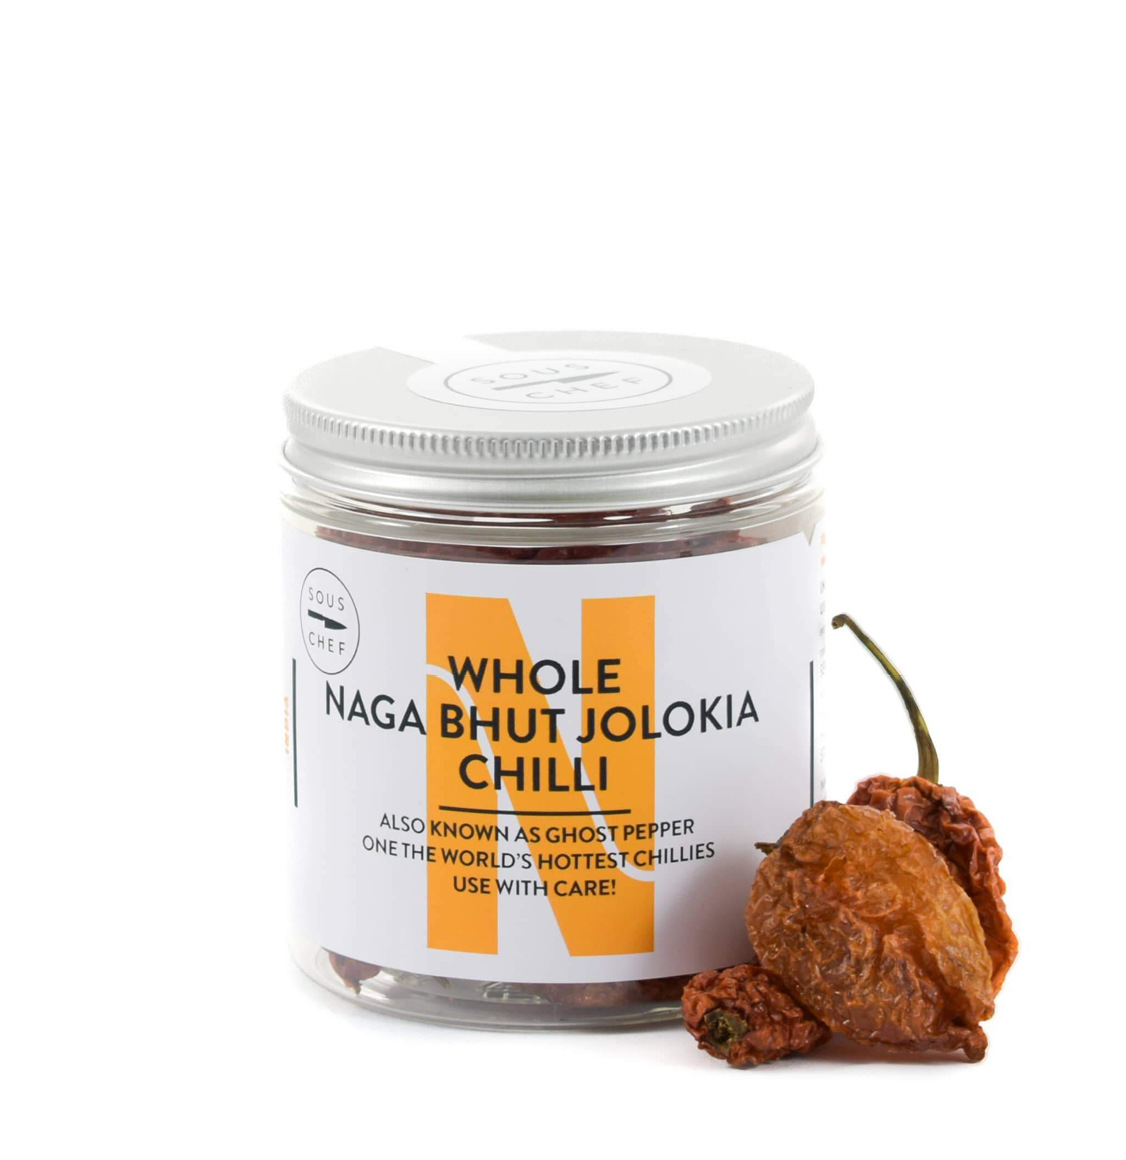 Sous Chef Whole Naga Bhut Jolokia Chilli 20g